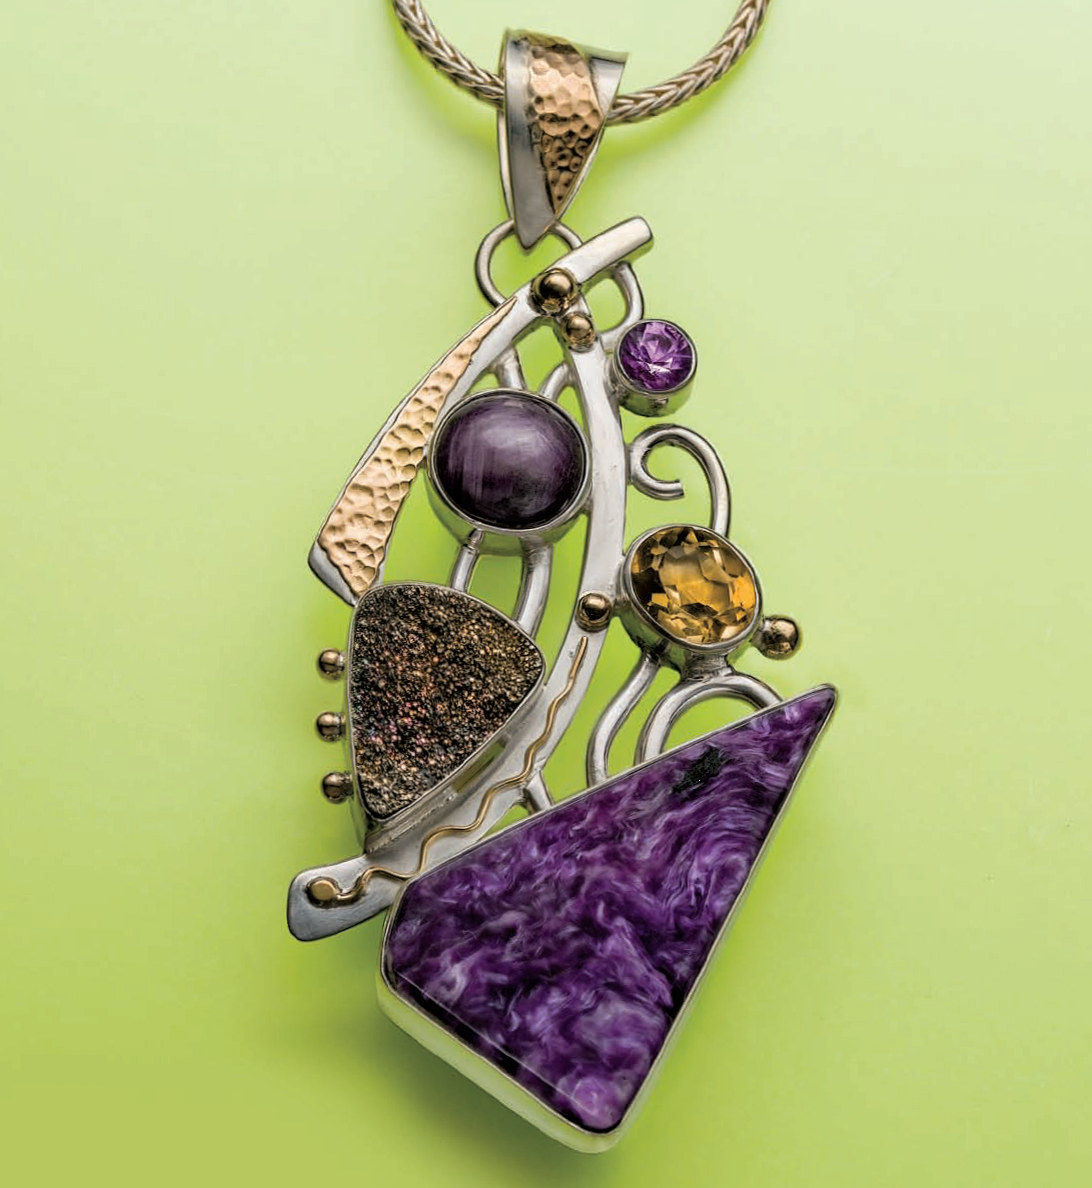 Charoite Pendant with other gemstones: ametrine, citrine, corundum, and rainbow drusy pyrite, by Marilyn Mack. Originally published with a profile of the artist in Lapidary Journal Jewelry Artist April 2013; photo: Jim Lawson